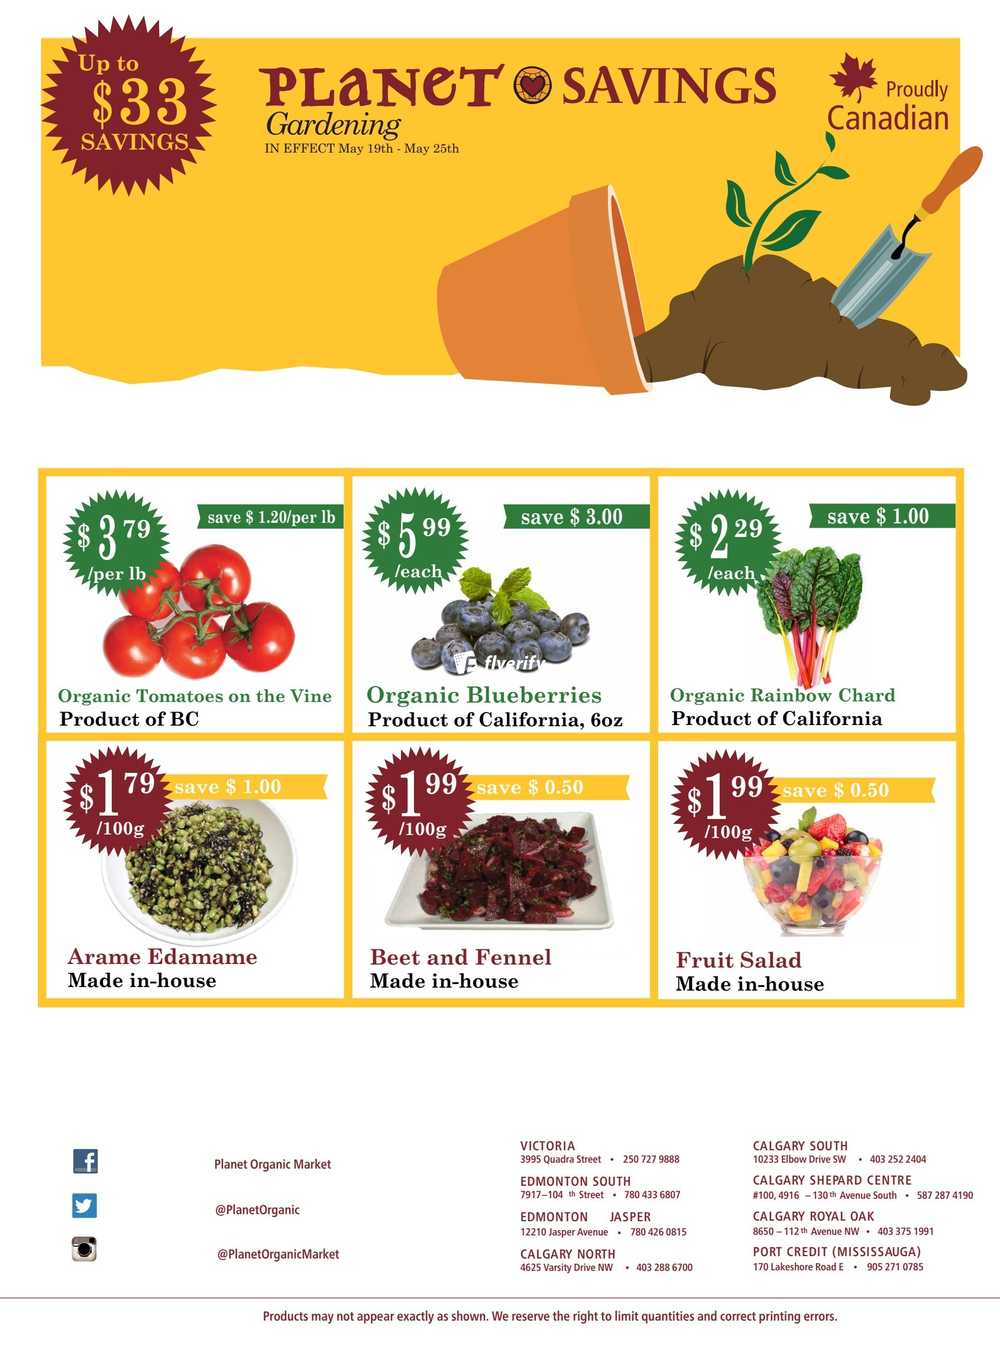 planet organic marketing report The uk's largest fully certified organic supermarket, planet organic offer organic food delivery across the uk and europe from organic veg boxes, fruit, veg, organic wine, health and beauty we think carefully about everything we sell so you don't have to.